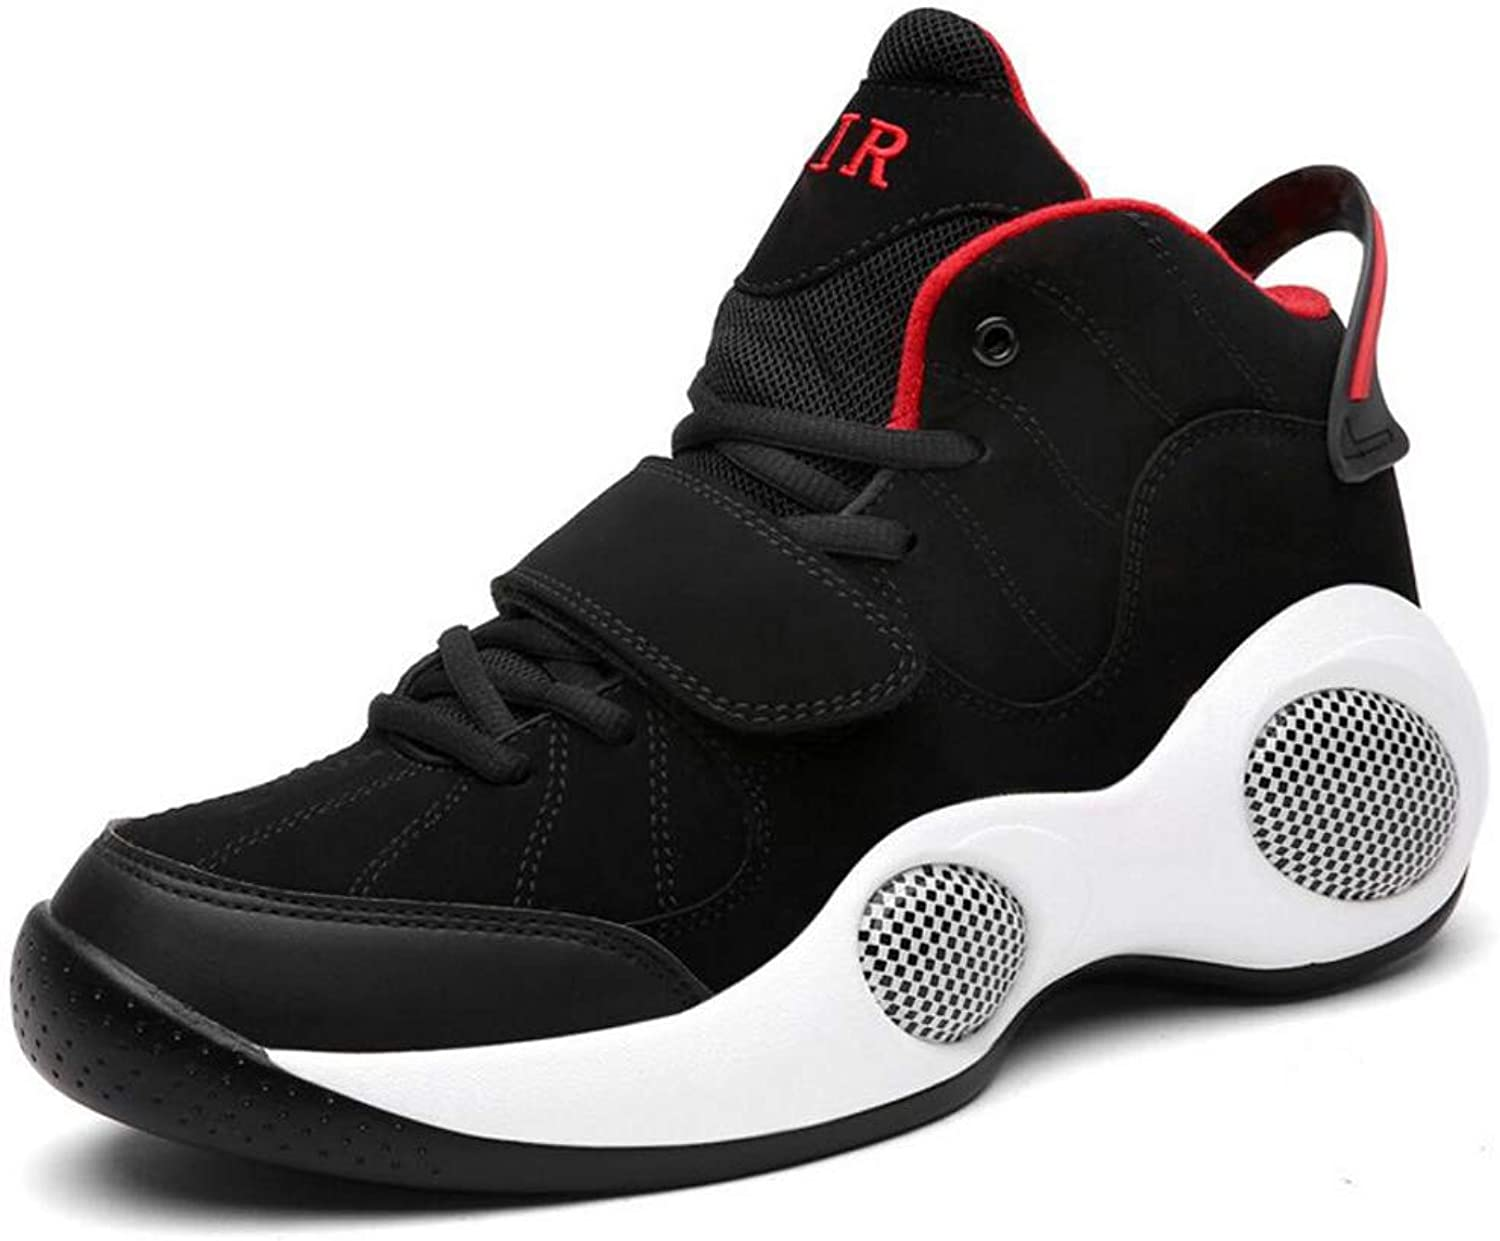 Zxcvb High To Help Large Size Sports Basketball shoes Breathable Outdoor Sports shoes Non-slip Shock Absorption Running Men's shoes